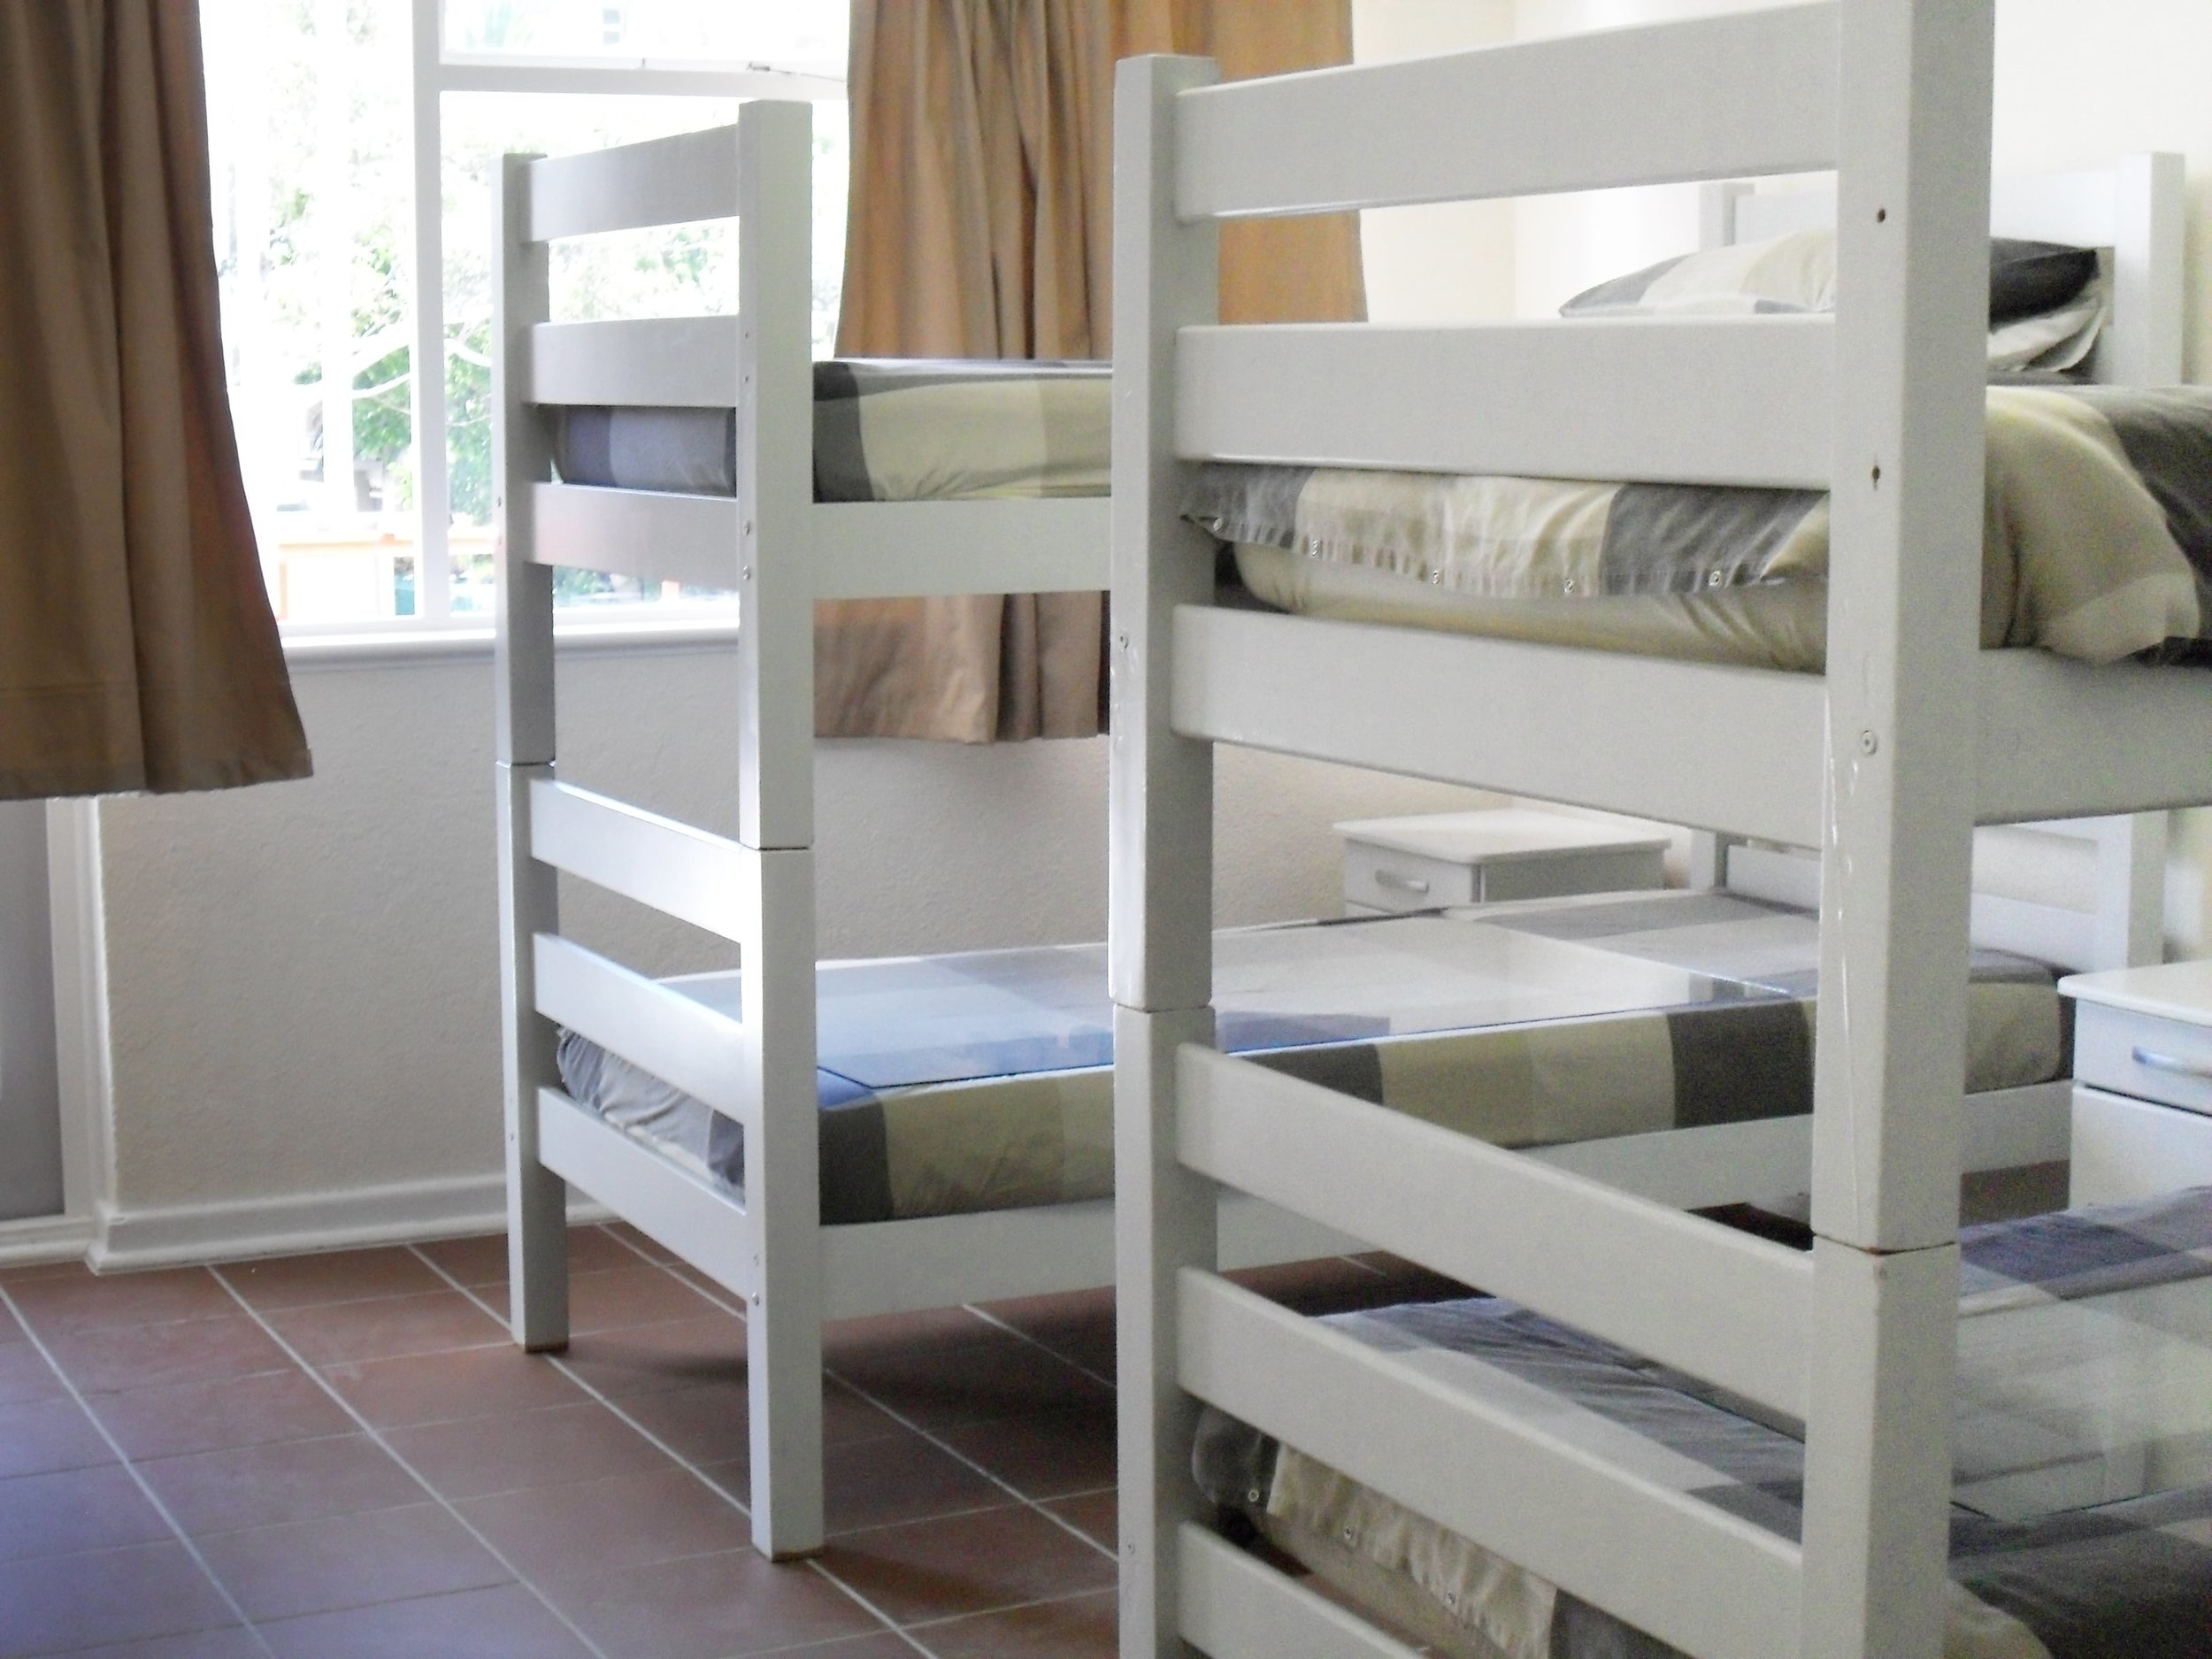 LAL-CPT-Accommodation-On-site-Budget-001-min.JPG